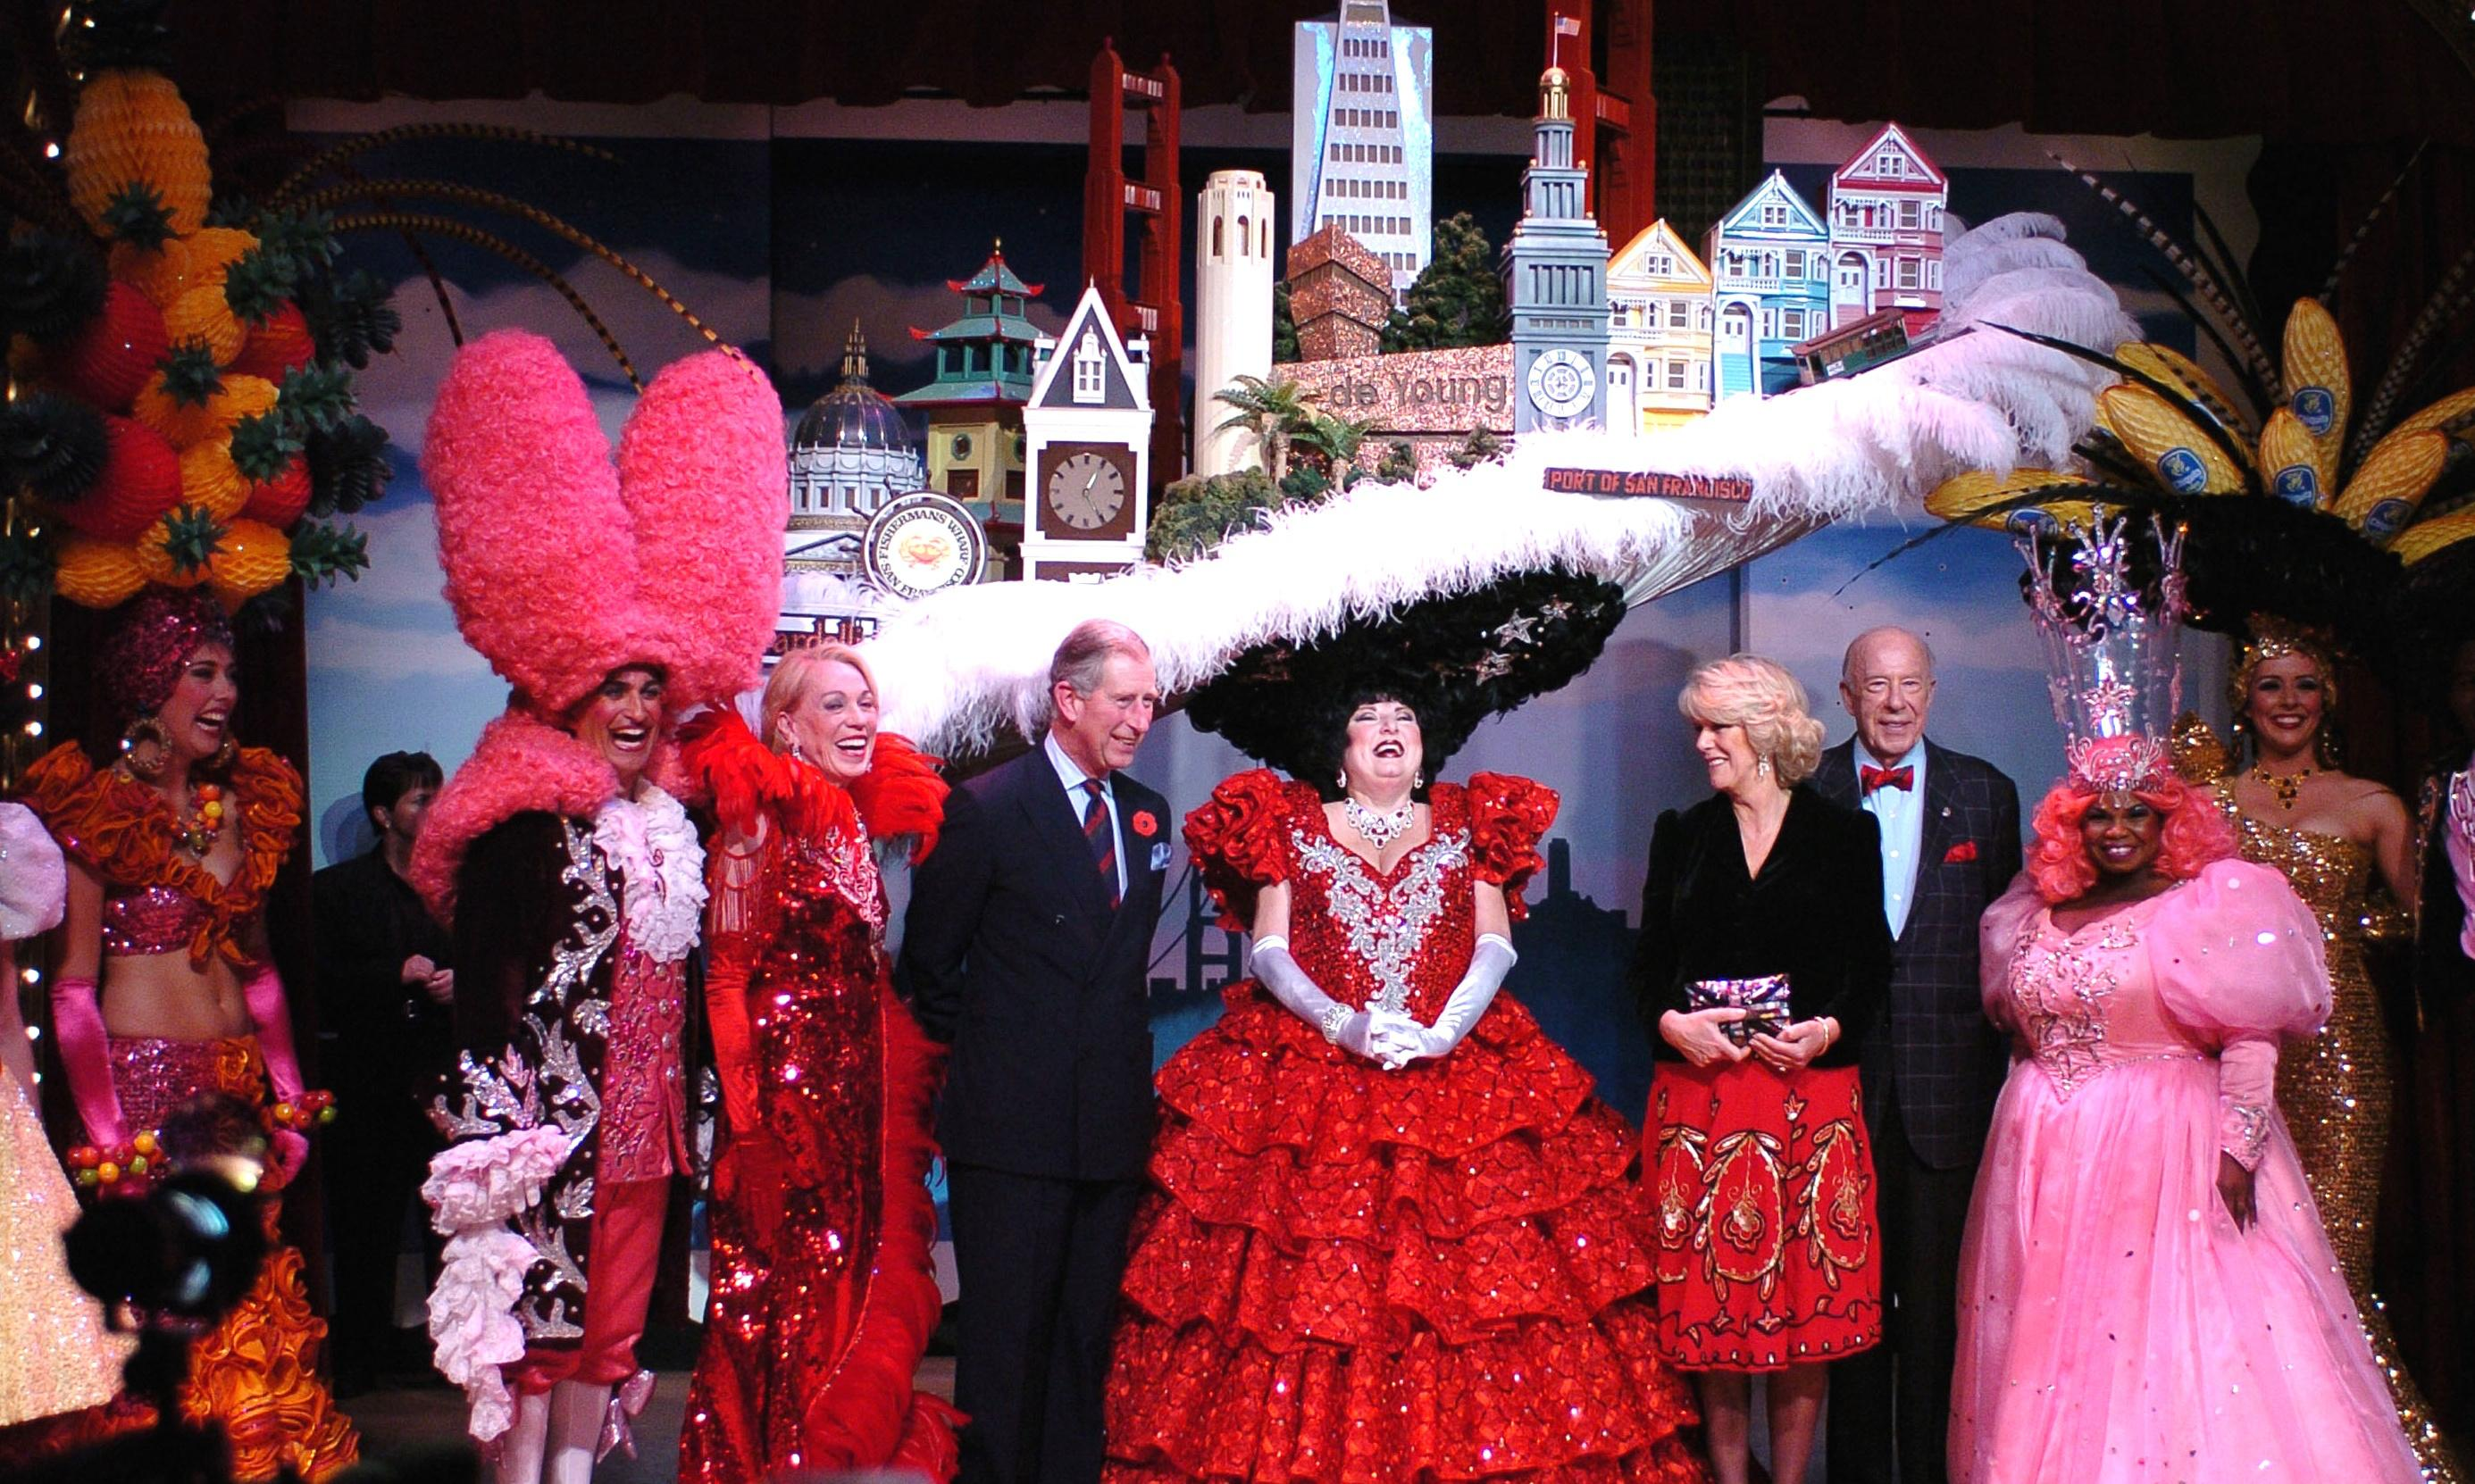 Beach Blanket Babylon: San Francisco's bawdy, topical show to close after 45 years